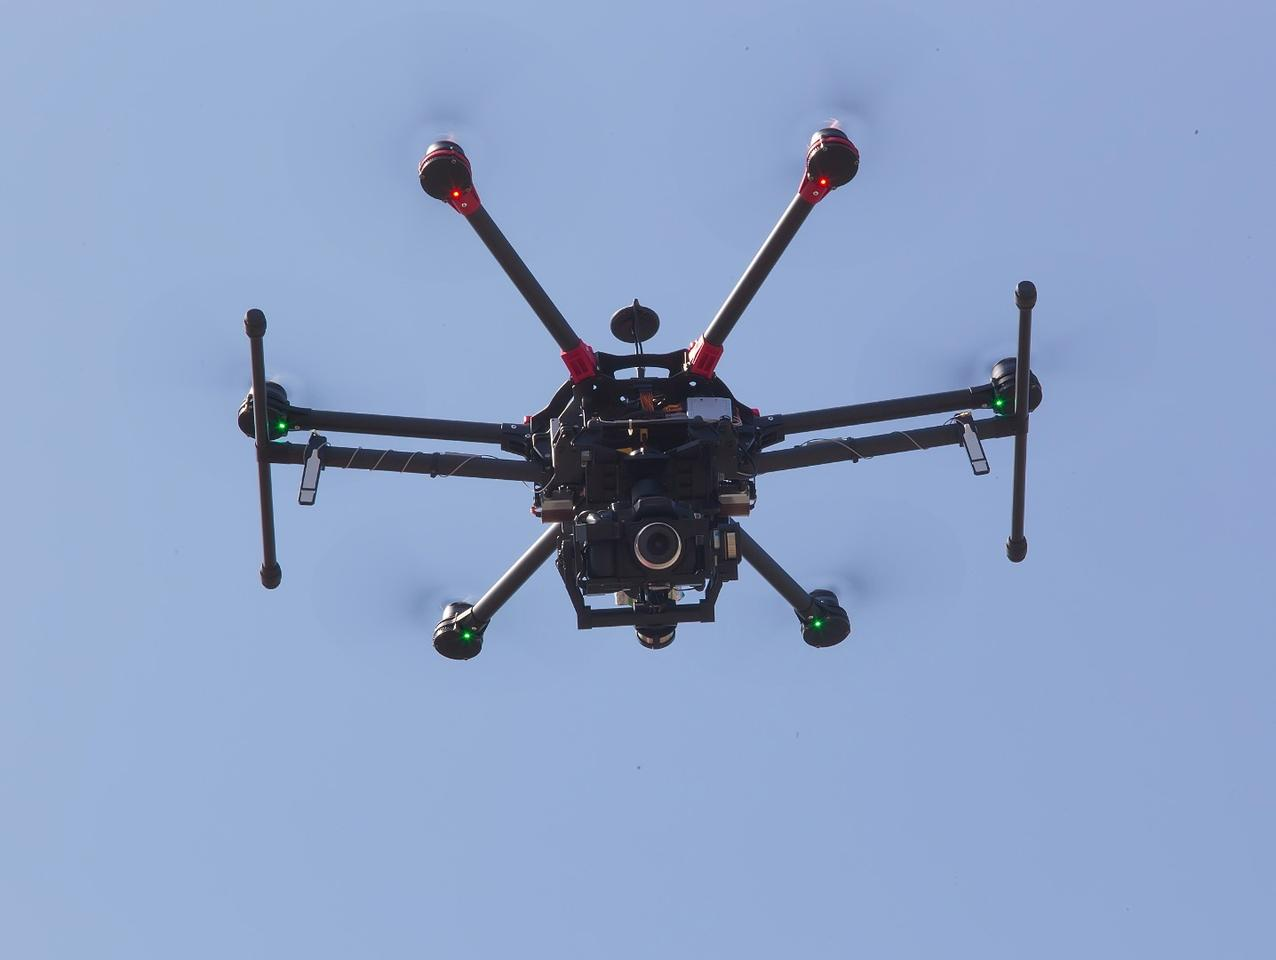 A new system lets camera drones maintain framing preassigned by a human operator